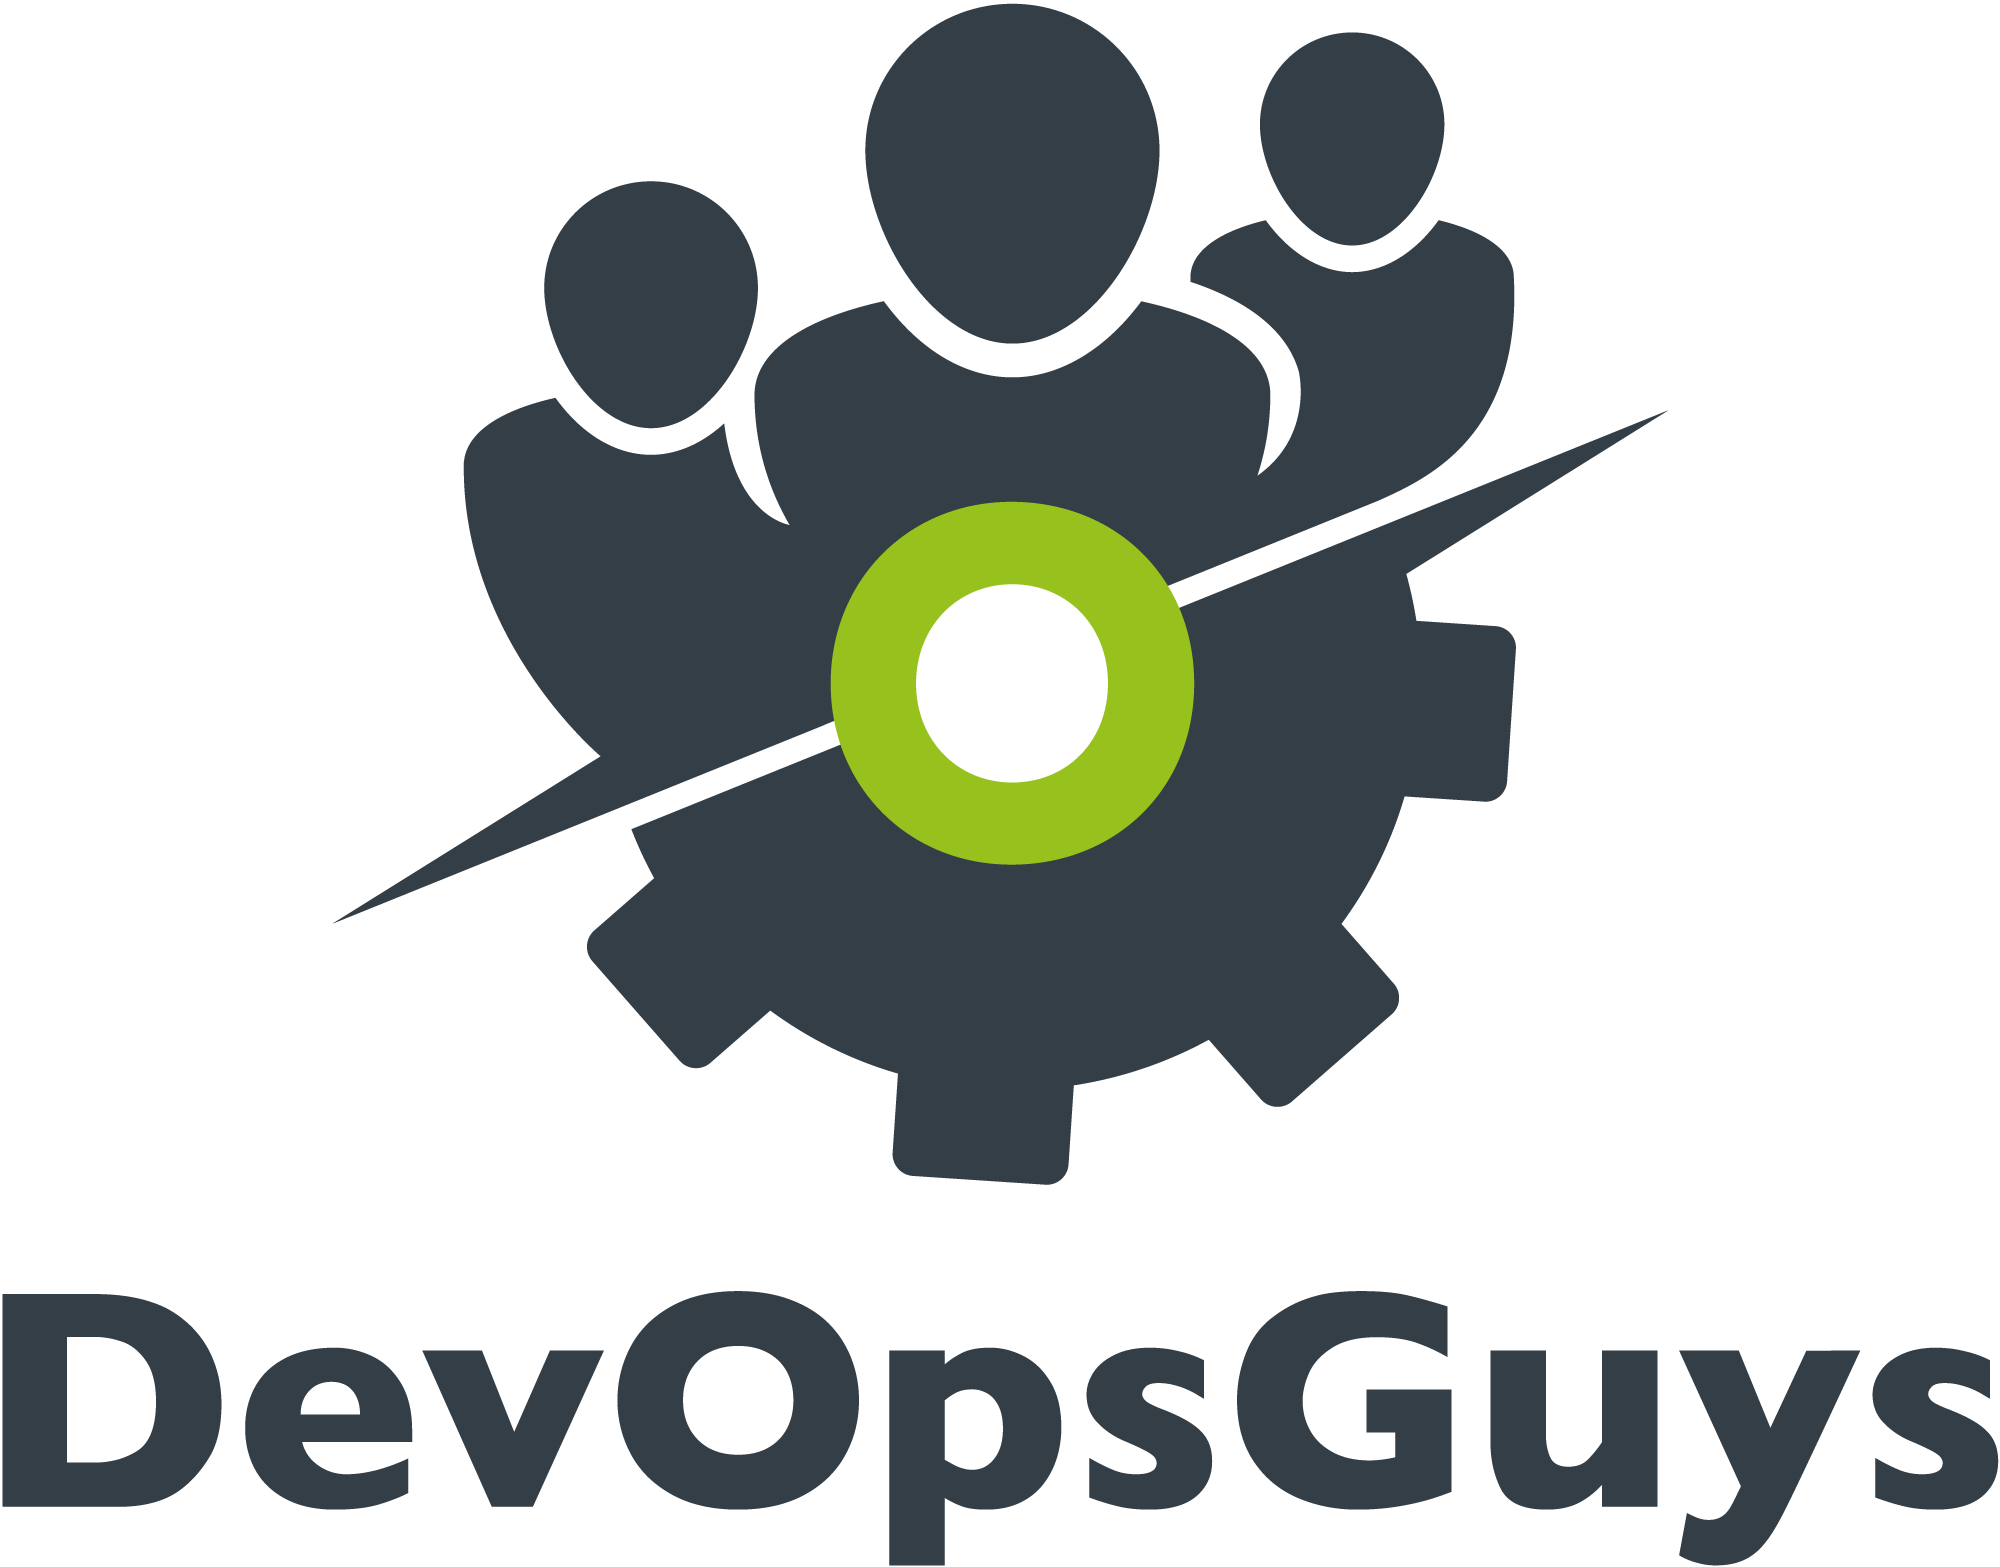 DevOpsGuys